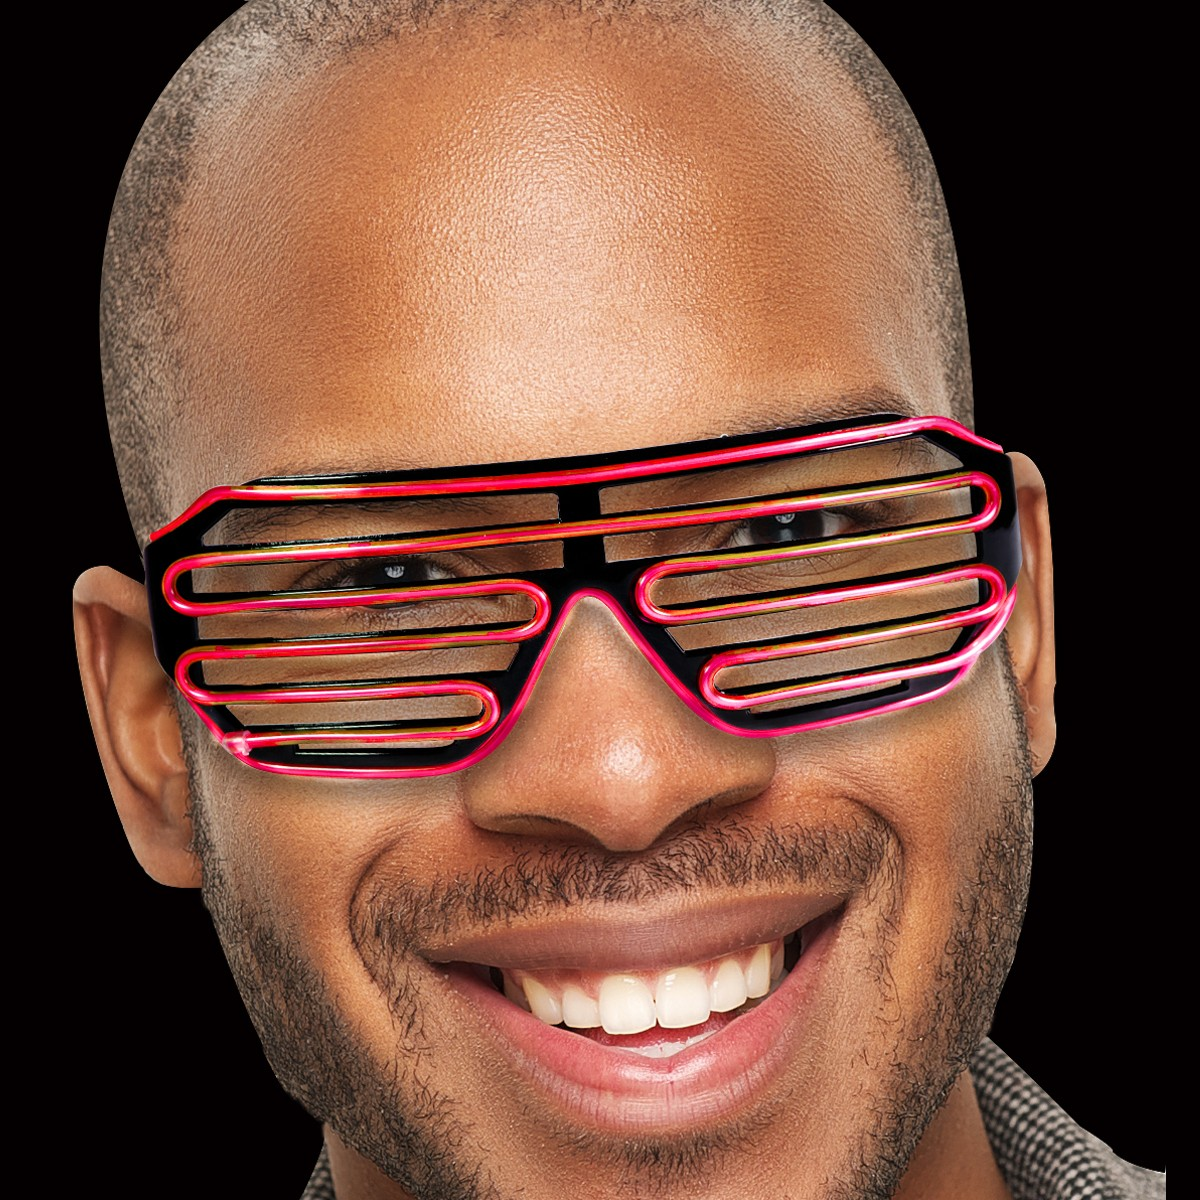 Red LED Slotted EL Sunglasses